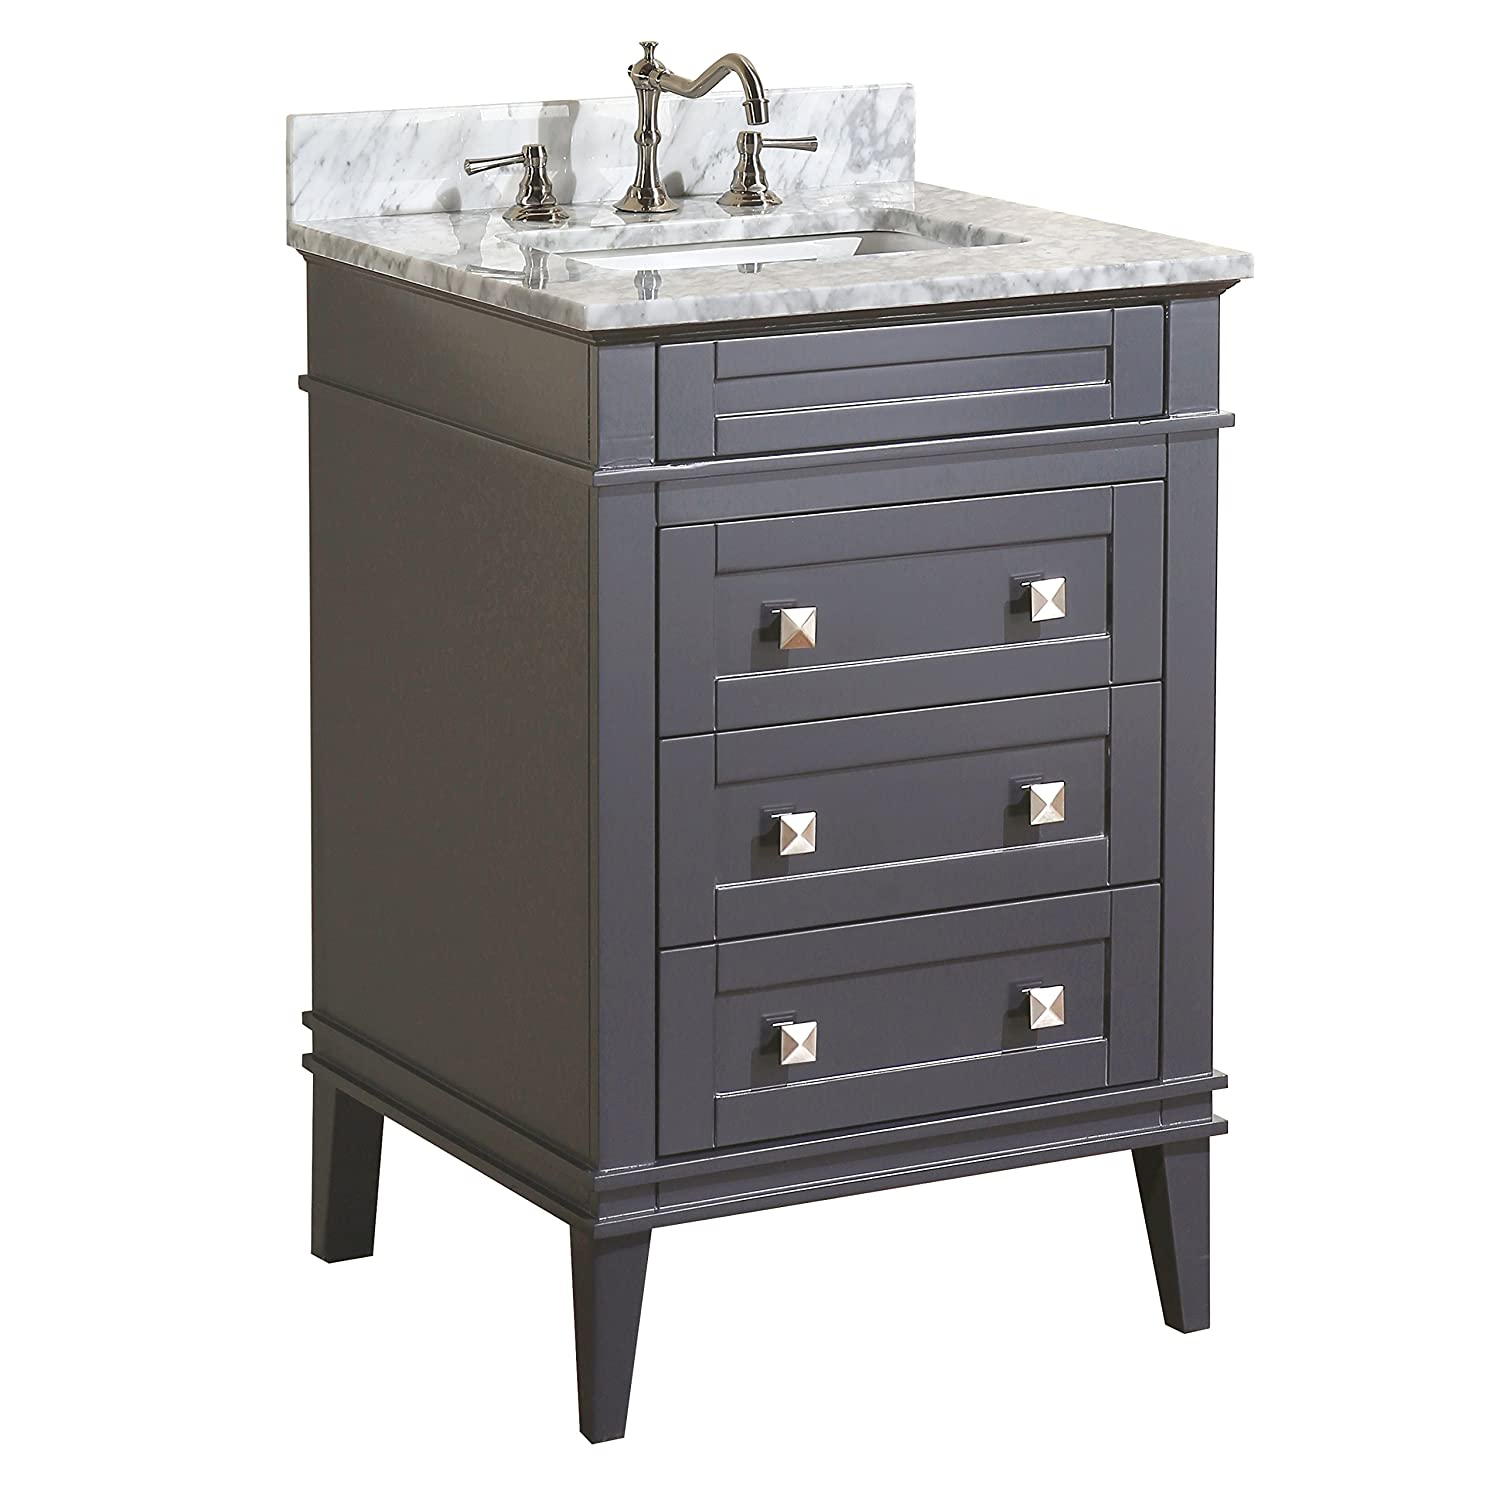 Kitchen Bath Collection KBCLGYCARR Eleanor Bathroom Vanity With - All wood bathroom vanities